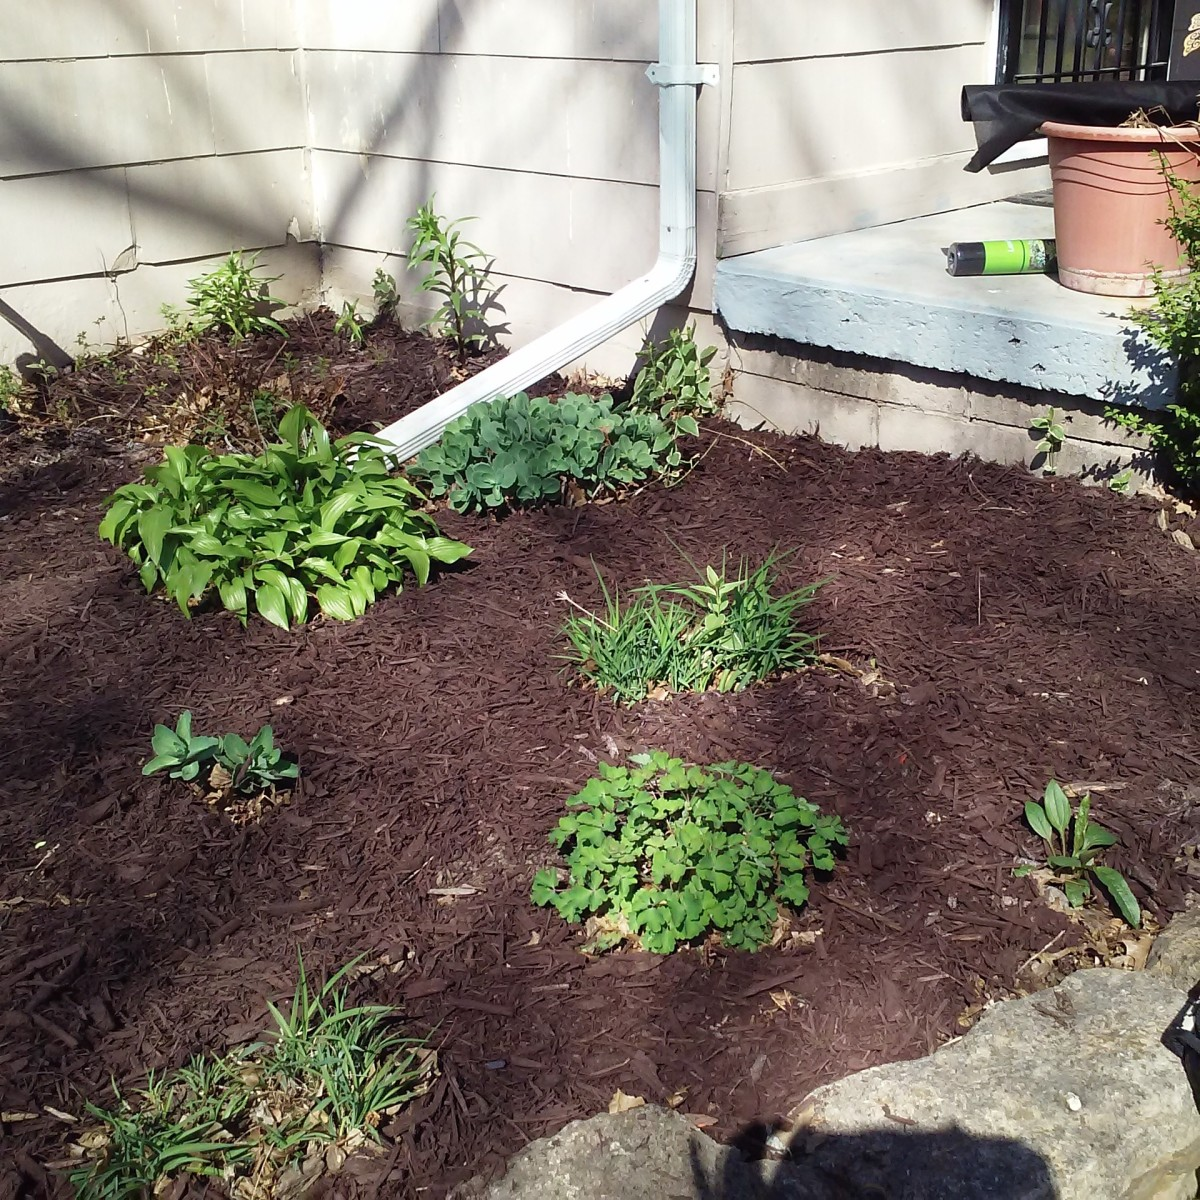 Weeded and mulched flower bed adjoining the house.